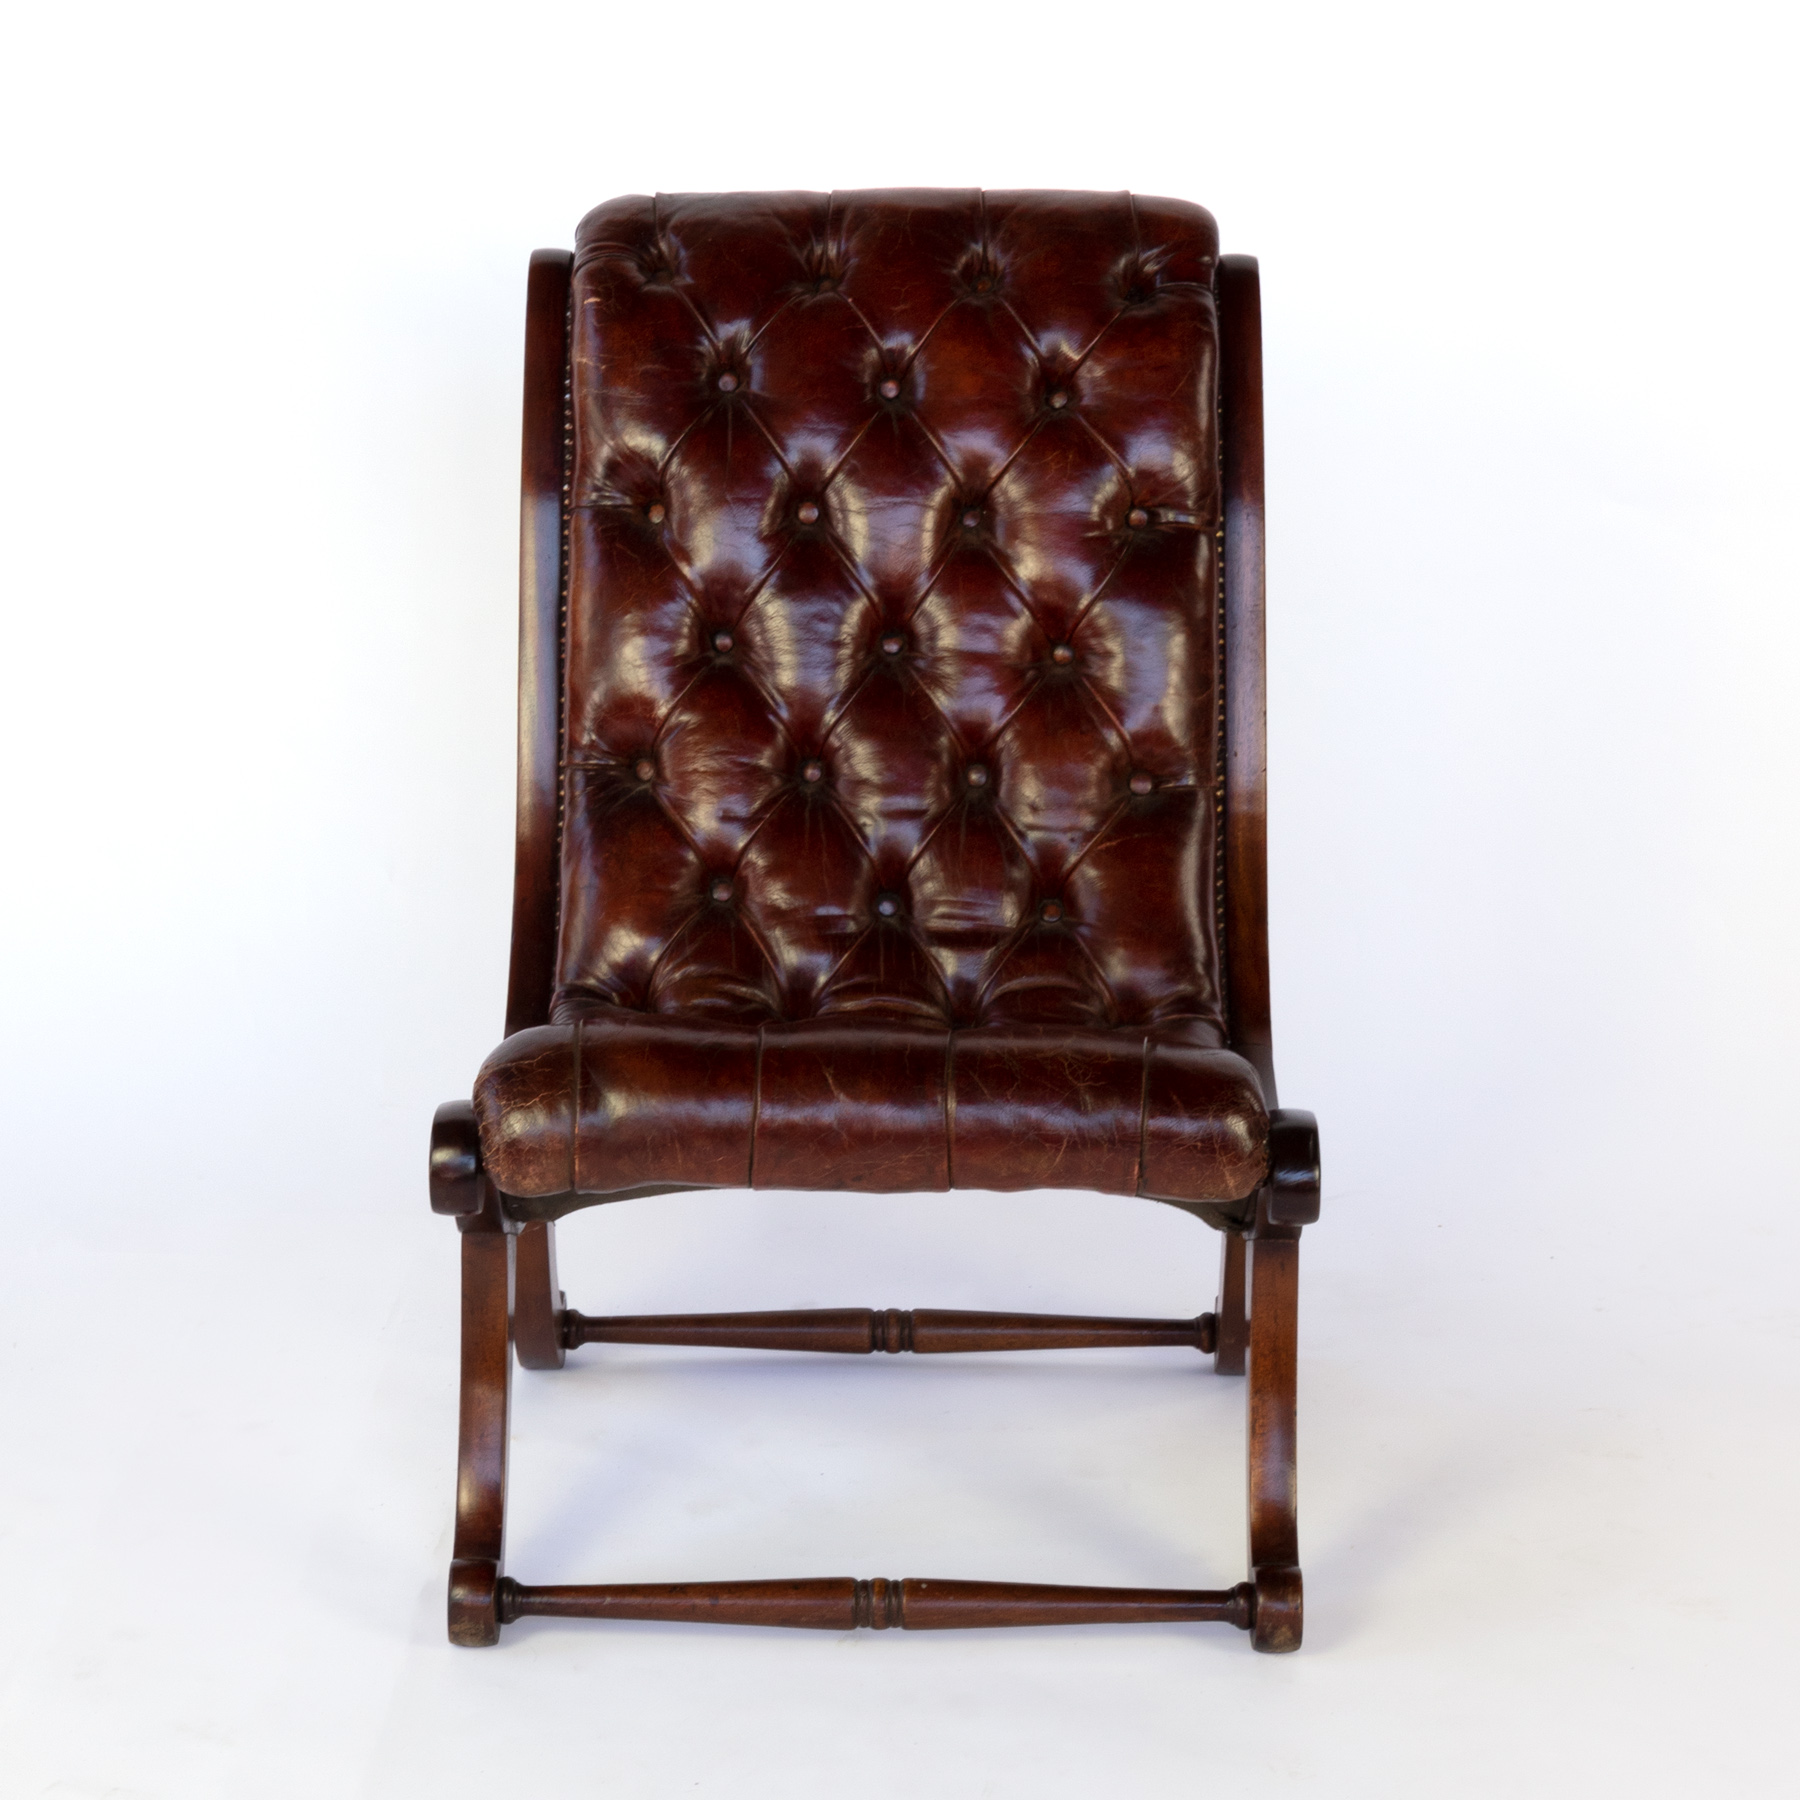 Miraculous Tufted Red Leather And Mahogany Slipper Chair With Nailhead Trim English Circa 1900 Pdpeps Interior Chair Design Pdpepsorg